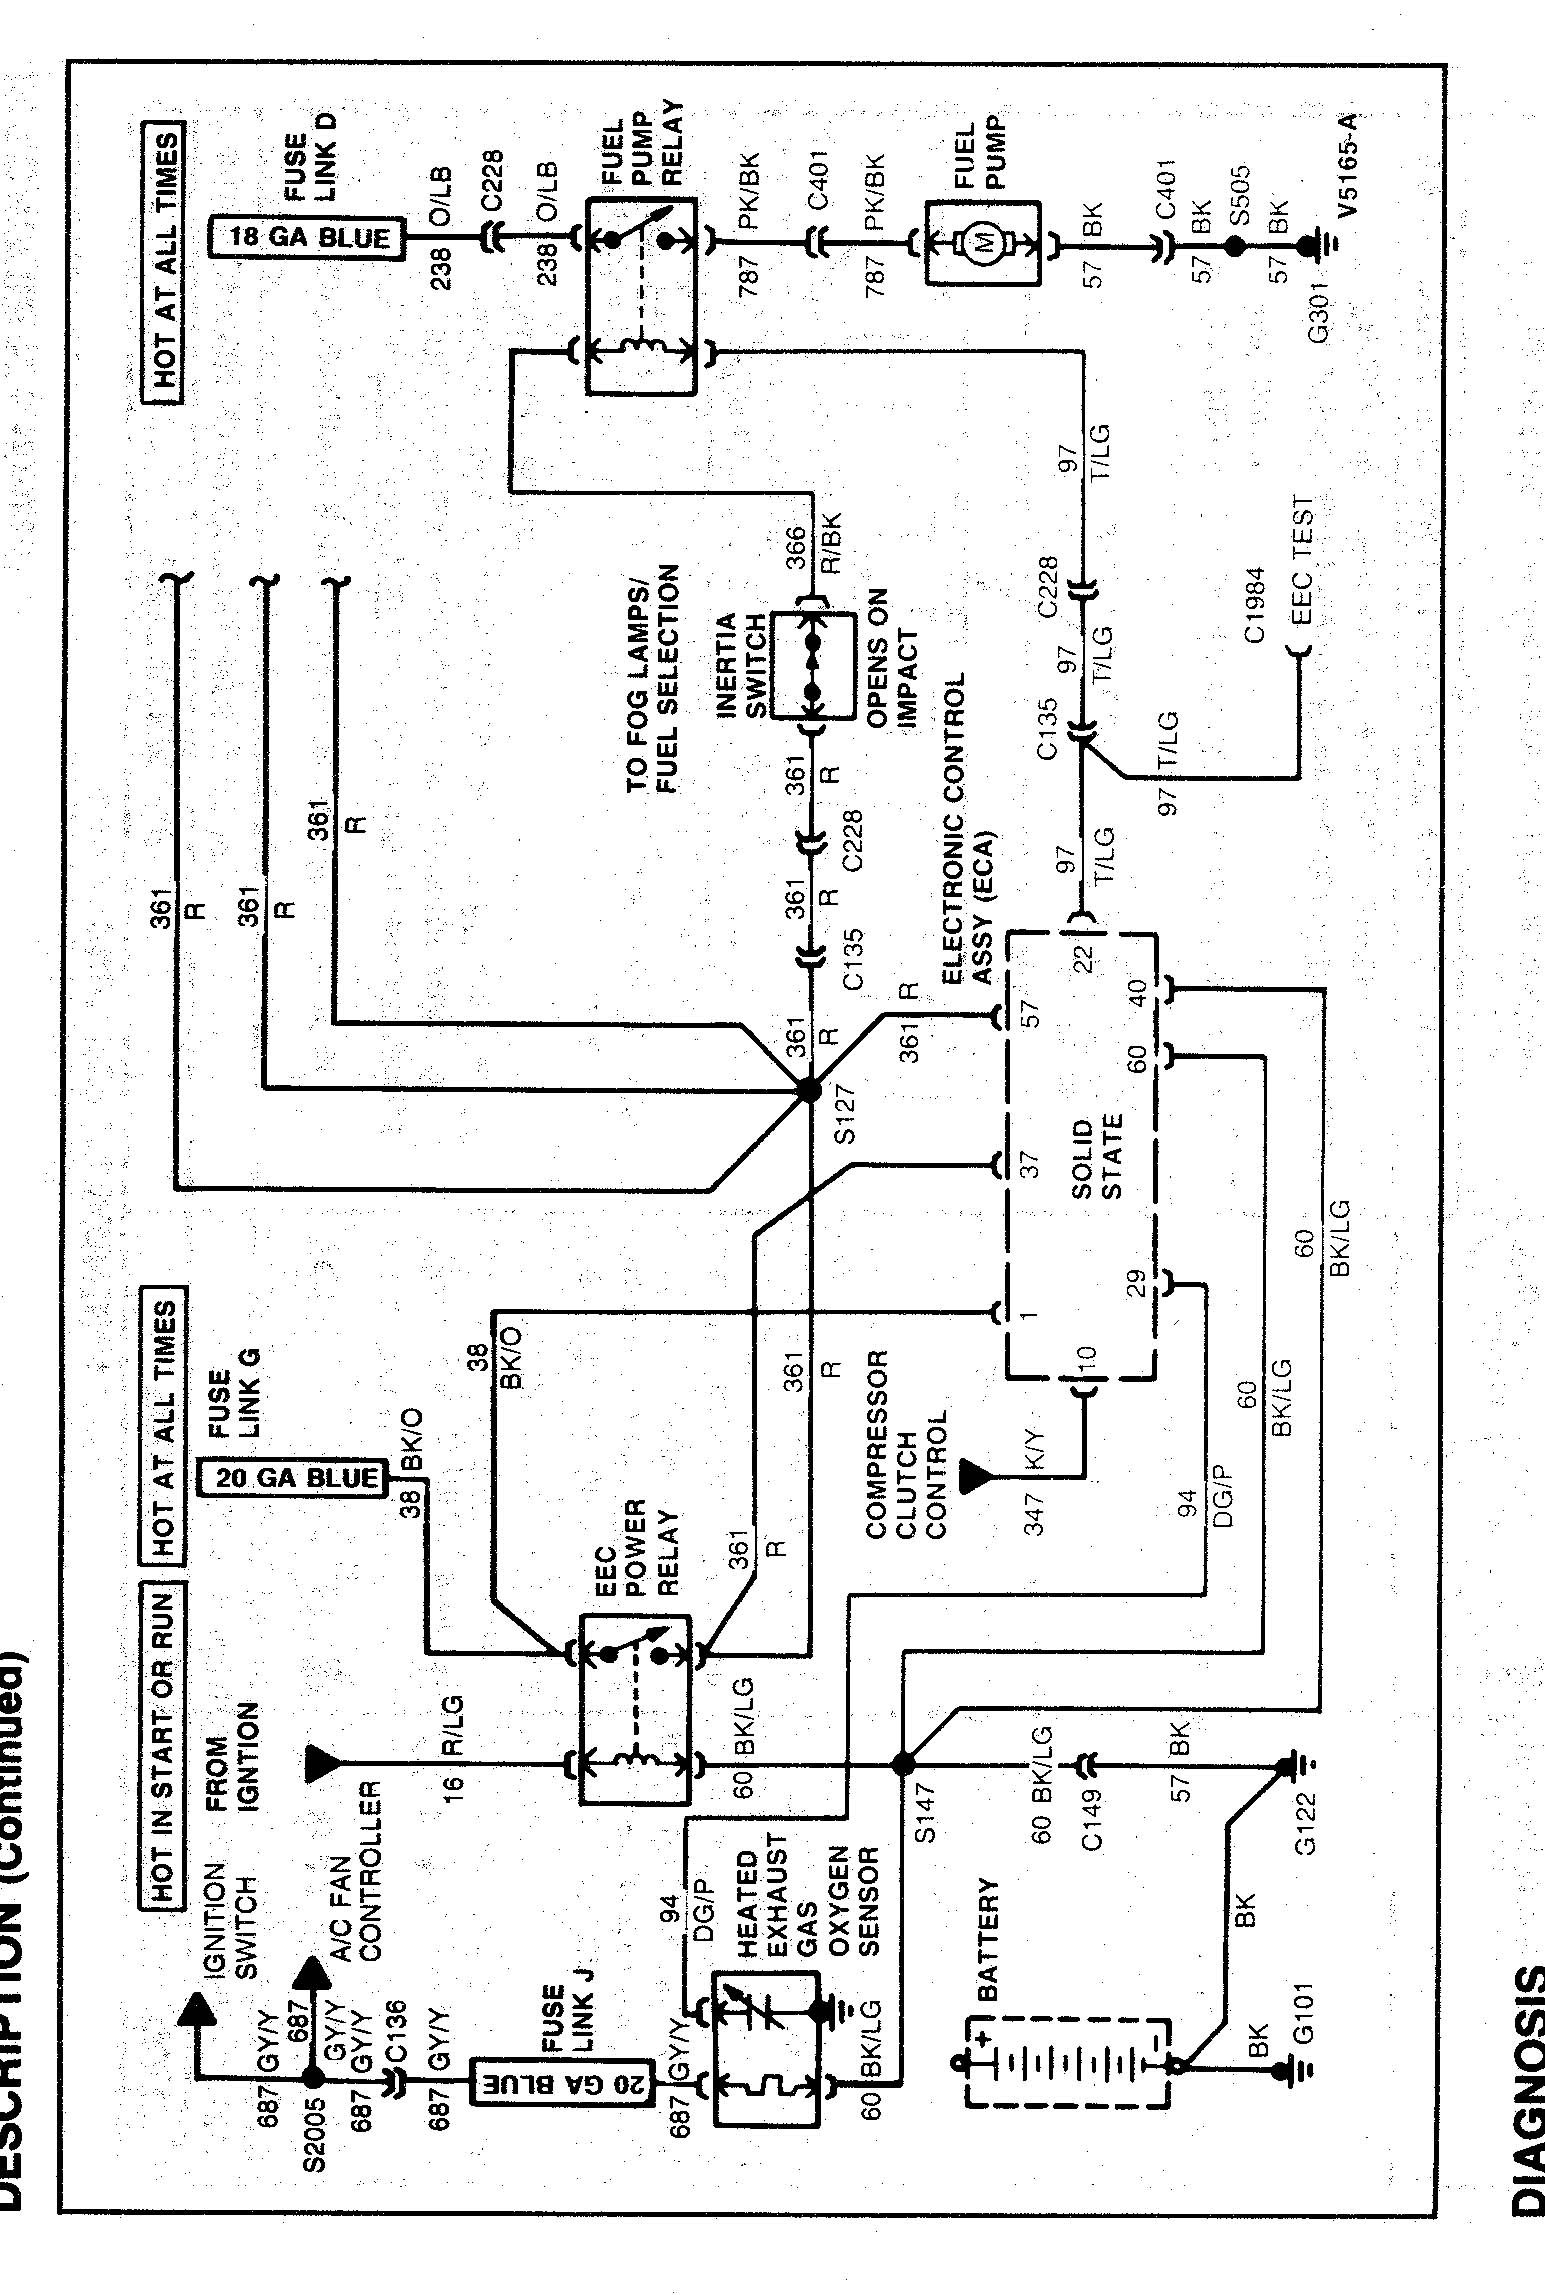 Chevy Fuel Pump Wiring Diagram